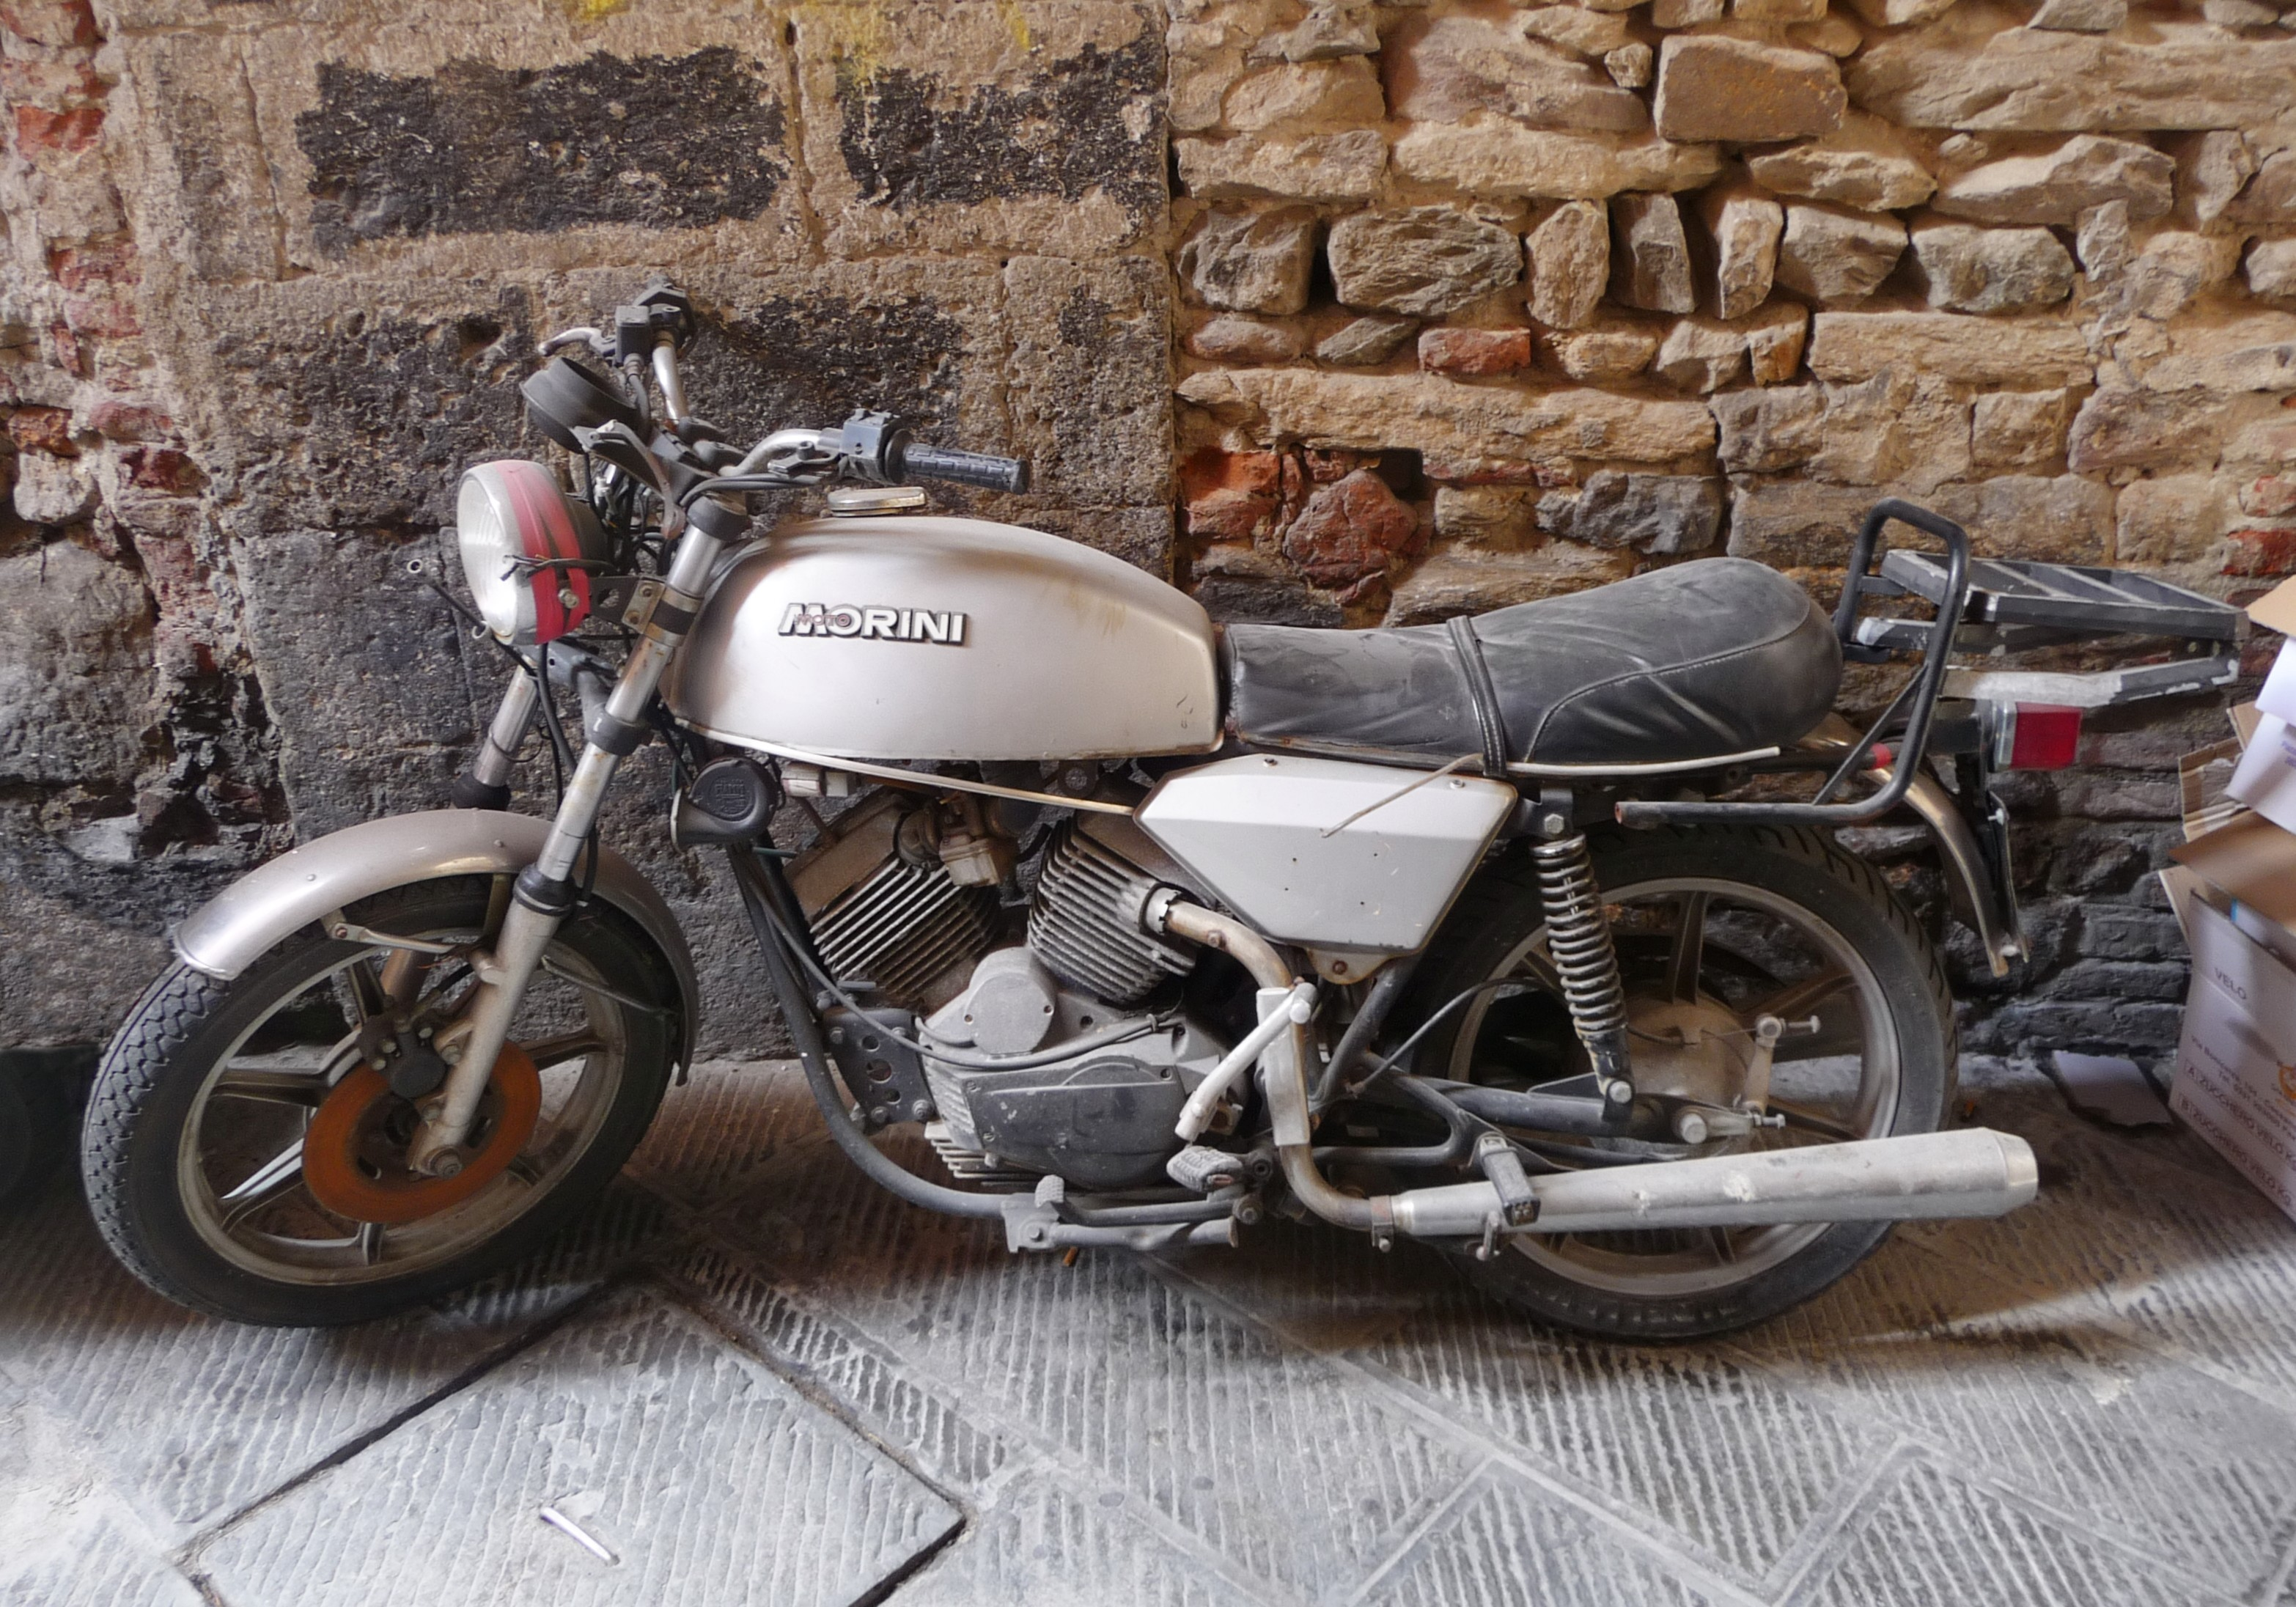 Moto Morini Unspecified category #8